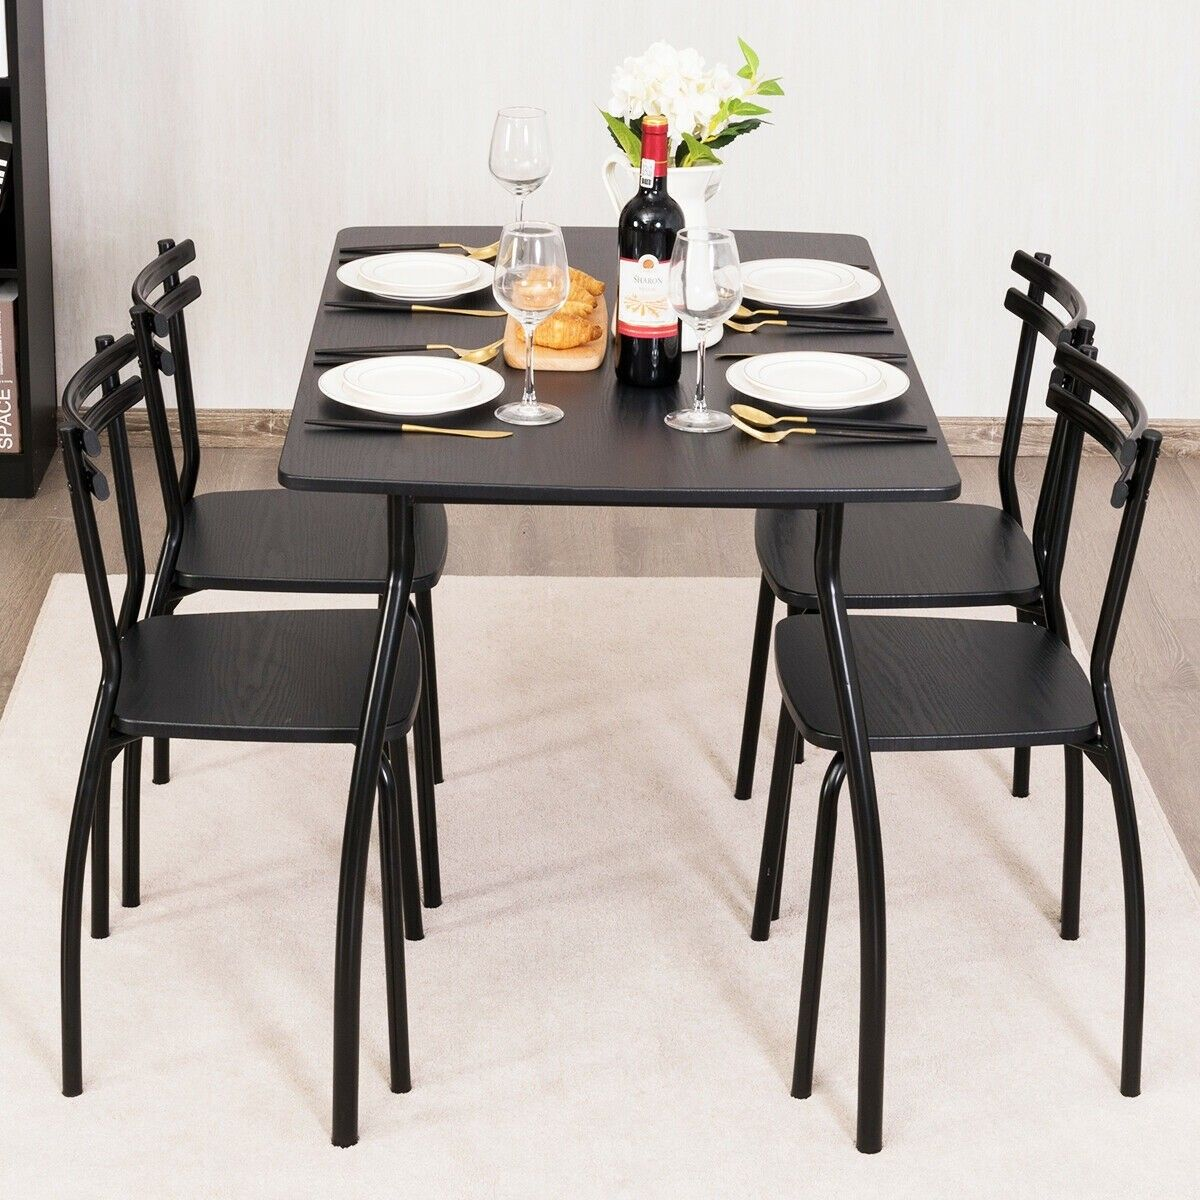 5 Pcs Dining Table Set With 4 Chairs Black Dining Table Setting Black Kitchen Furniture Dinner Table Chairs